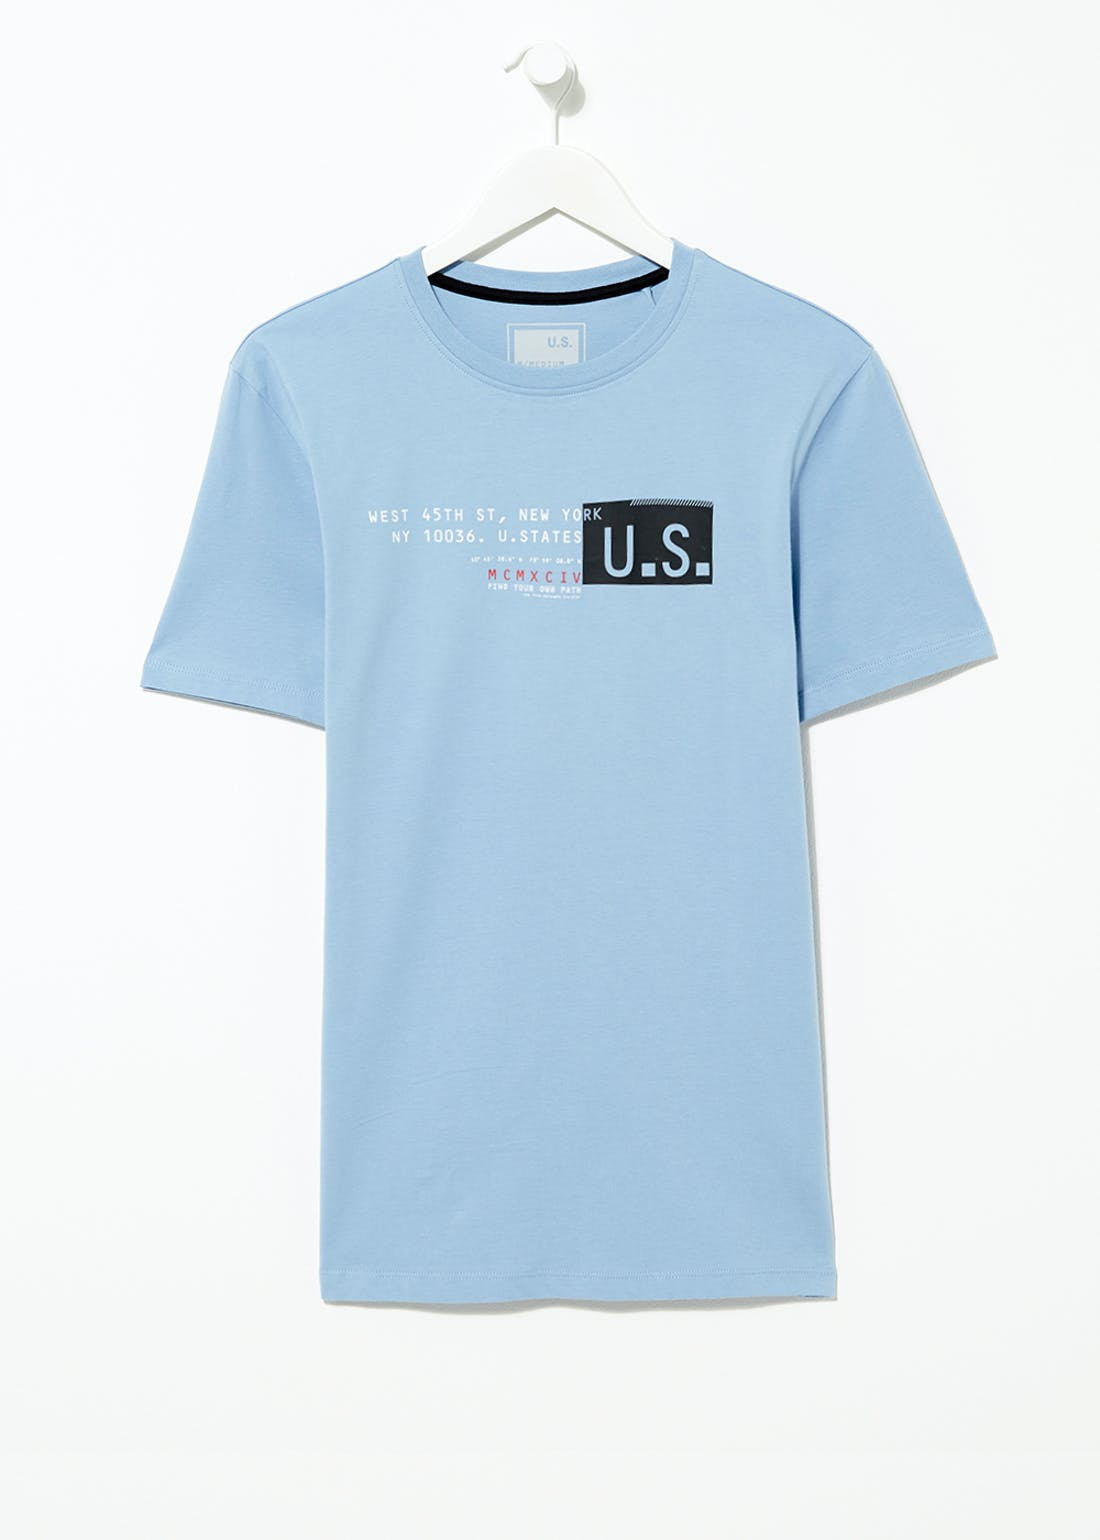 US Athletic West 45th T-Shirt